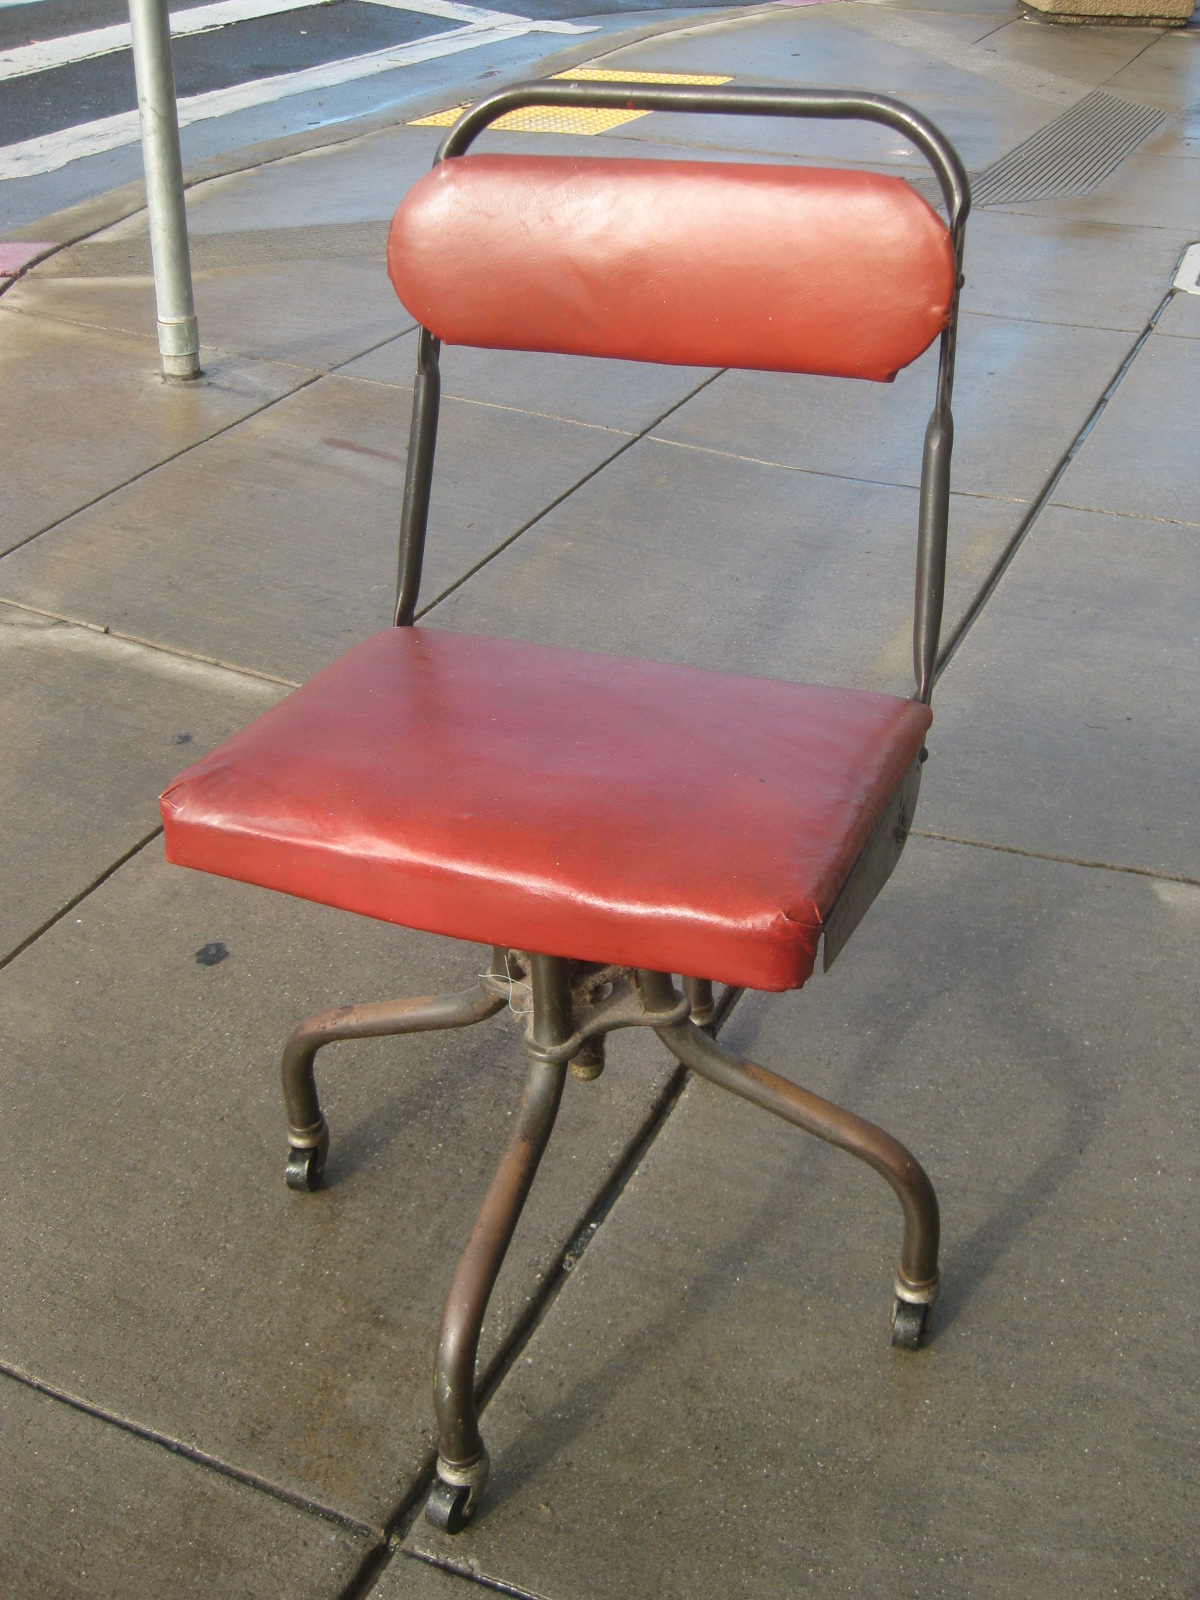 UHURU FURNITURE & COLLECTIBLES: SOLD - Retro Office Chair - $50